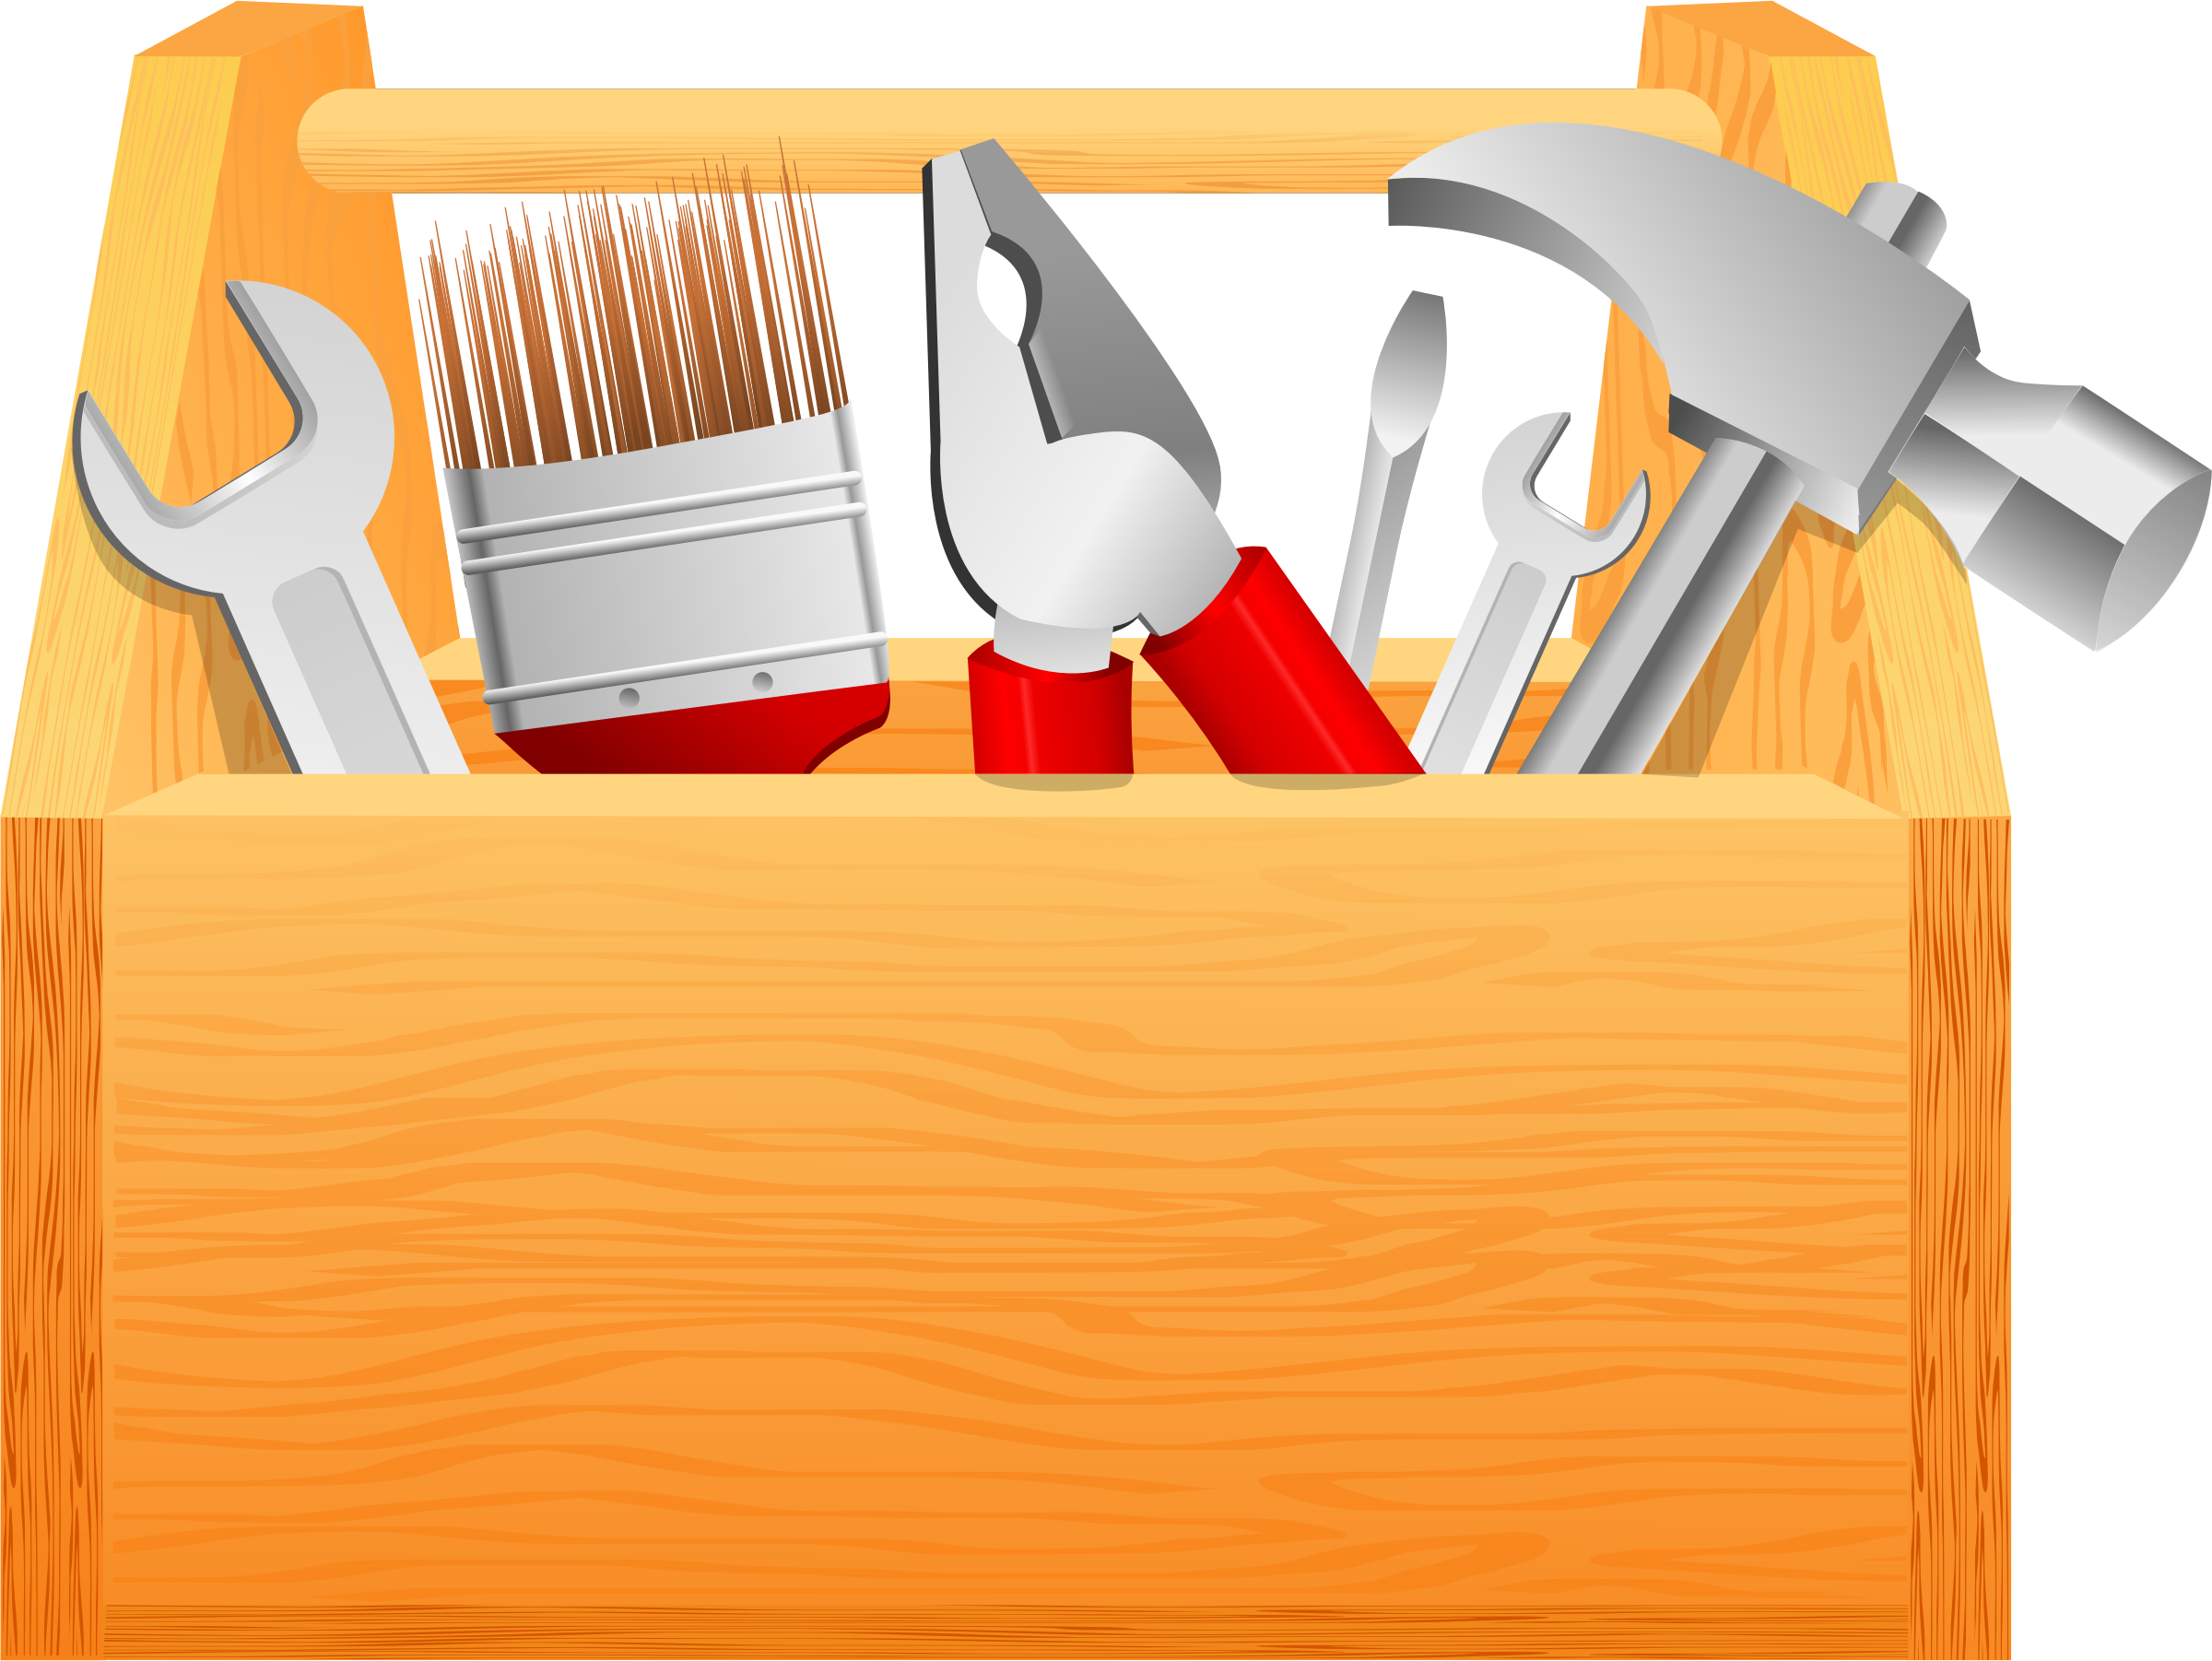 Tool clipart tool chest. Simple box big image